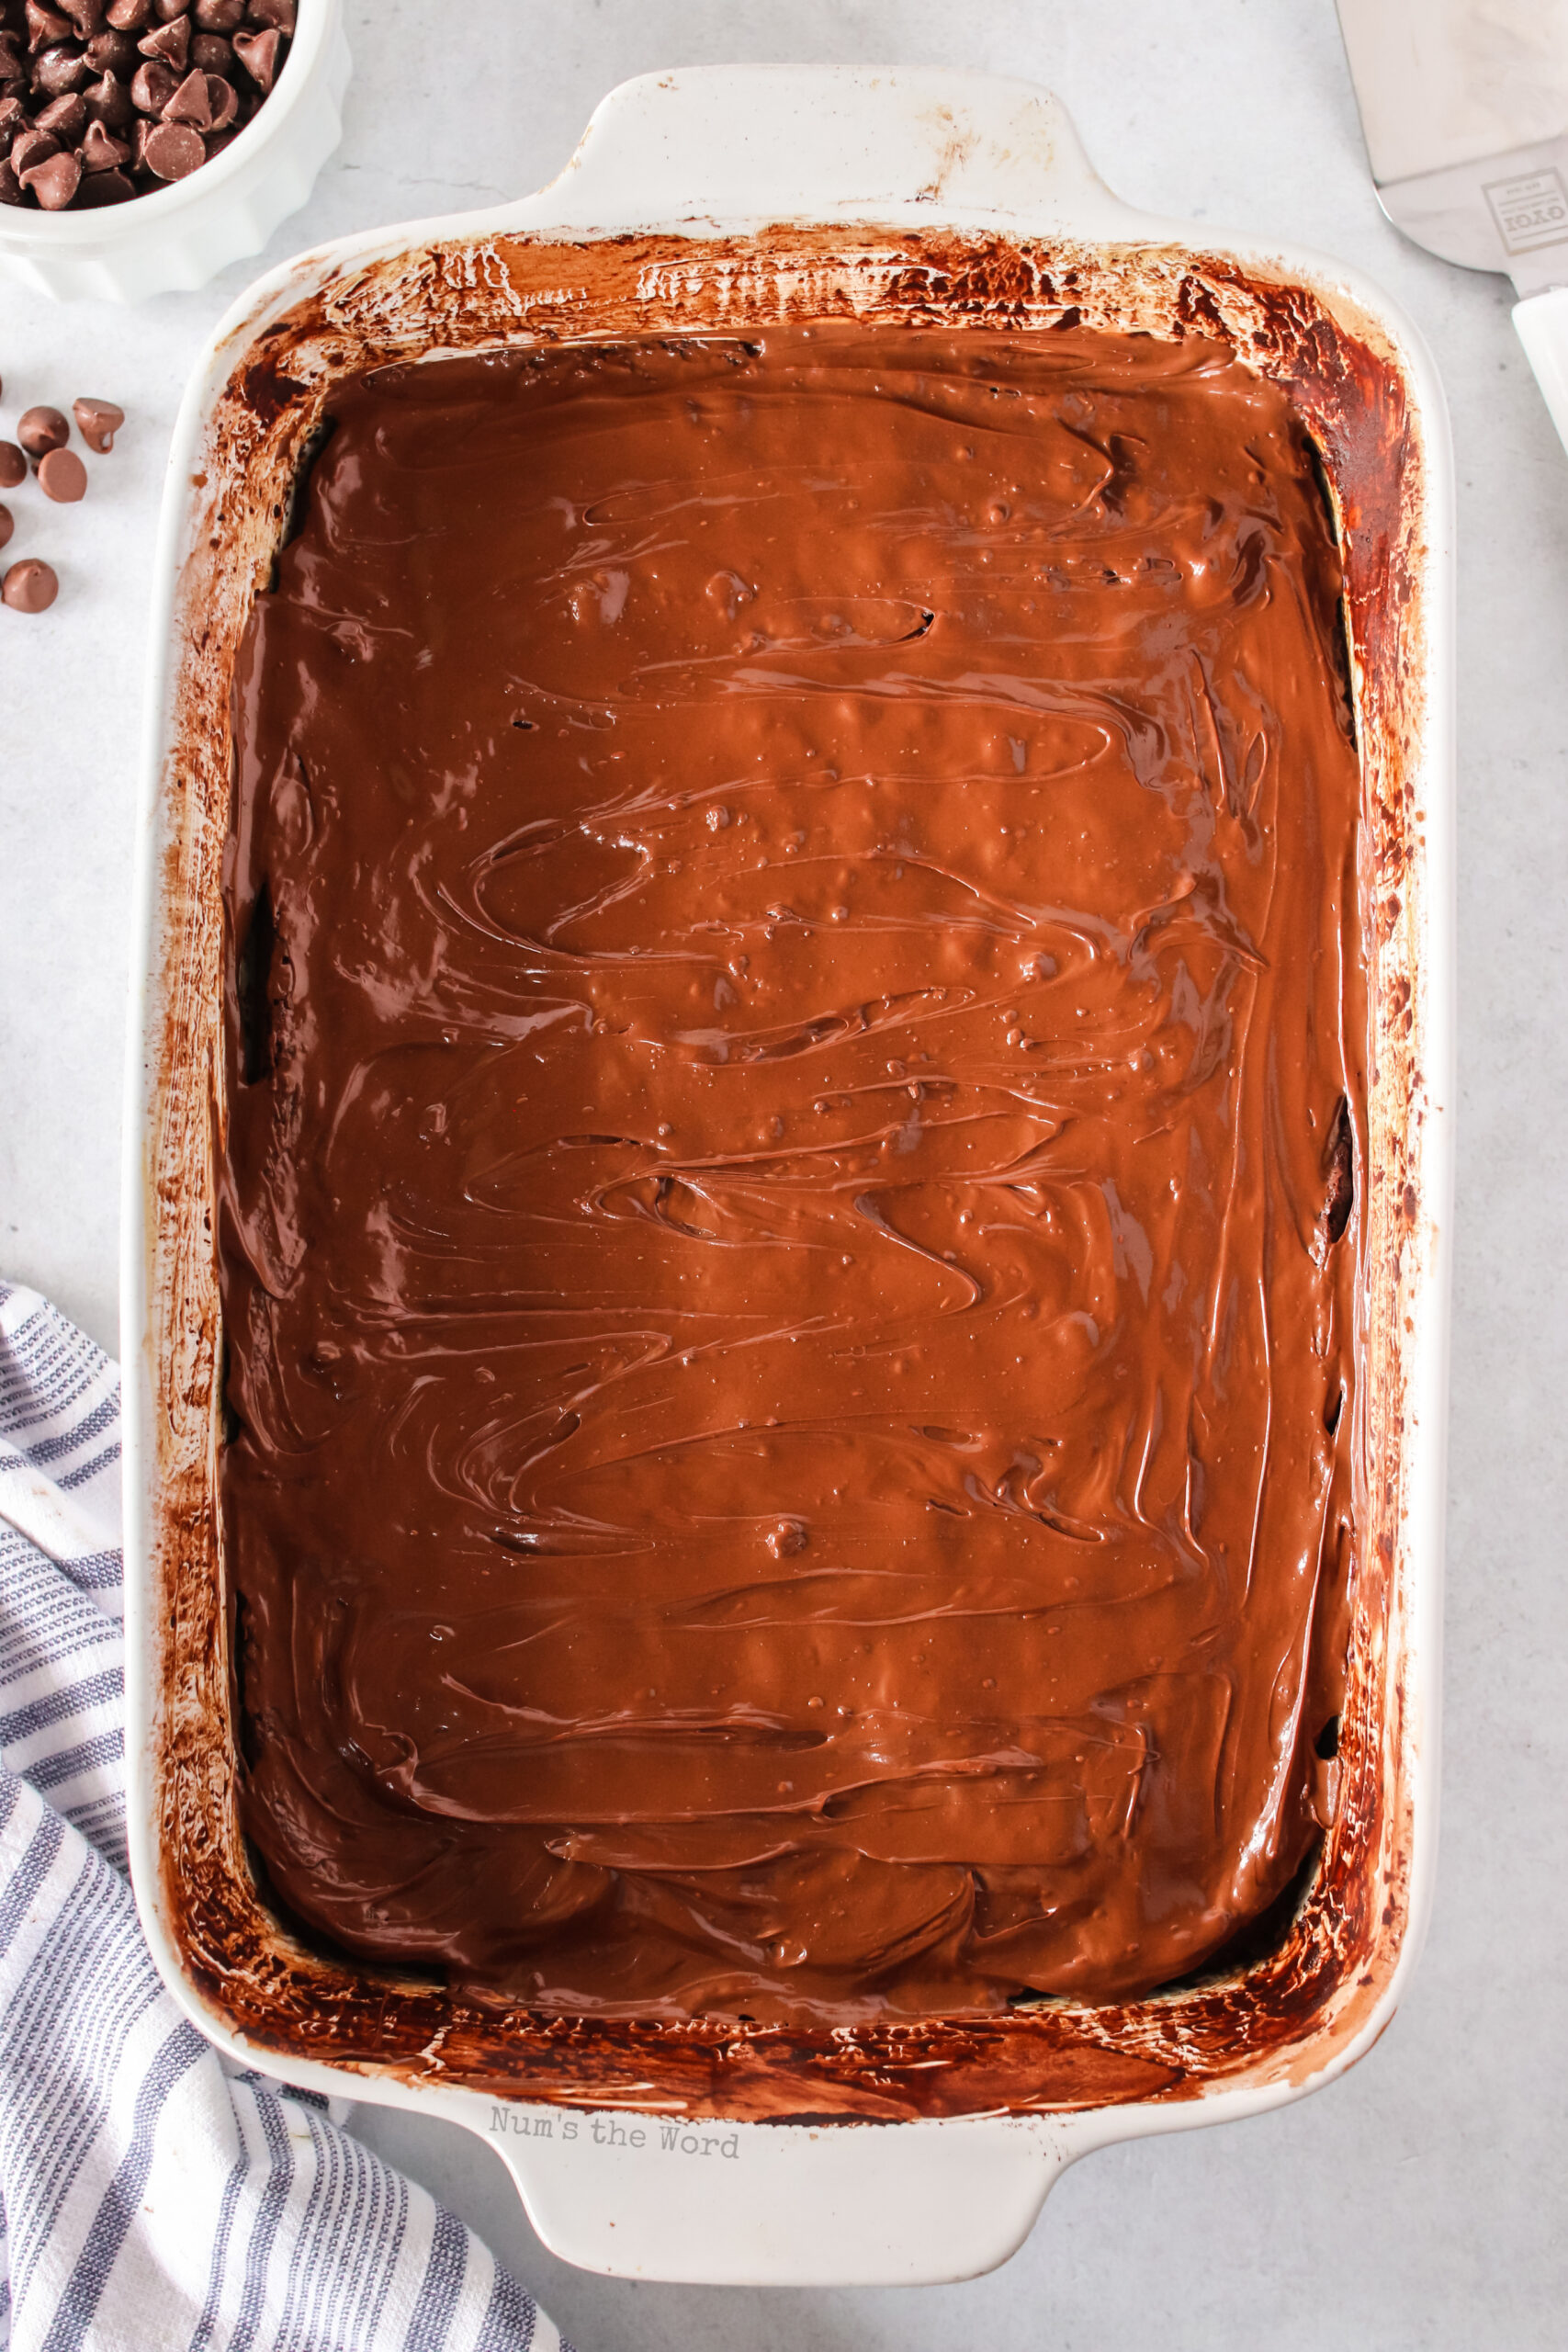 chocolate chips melted and spread over the top of brownies.